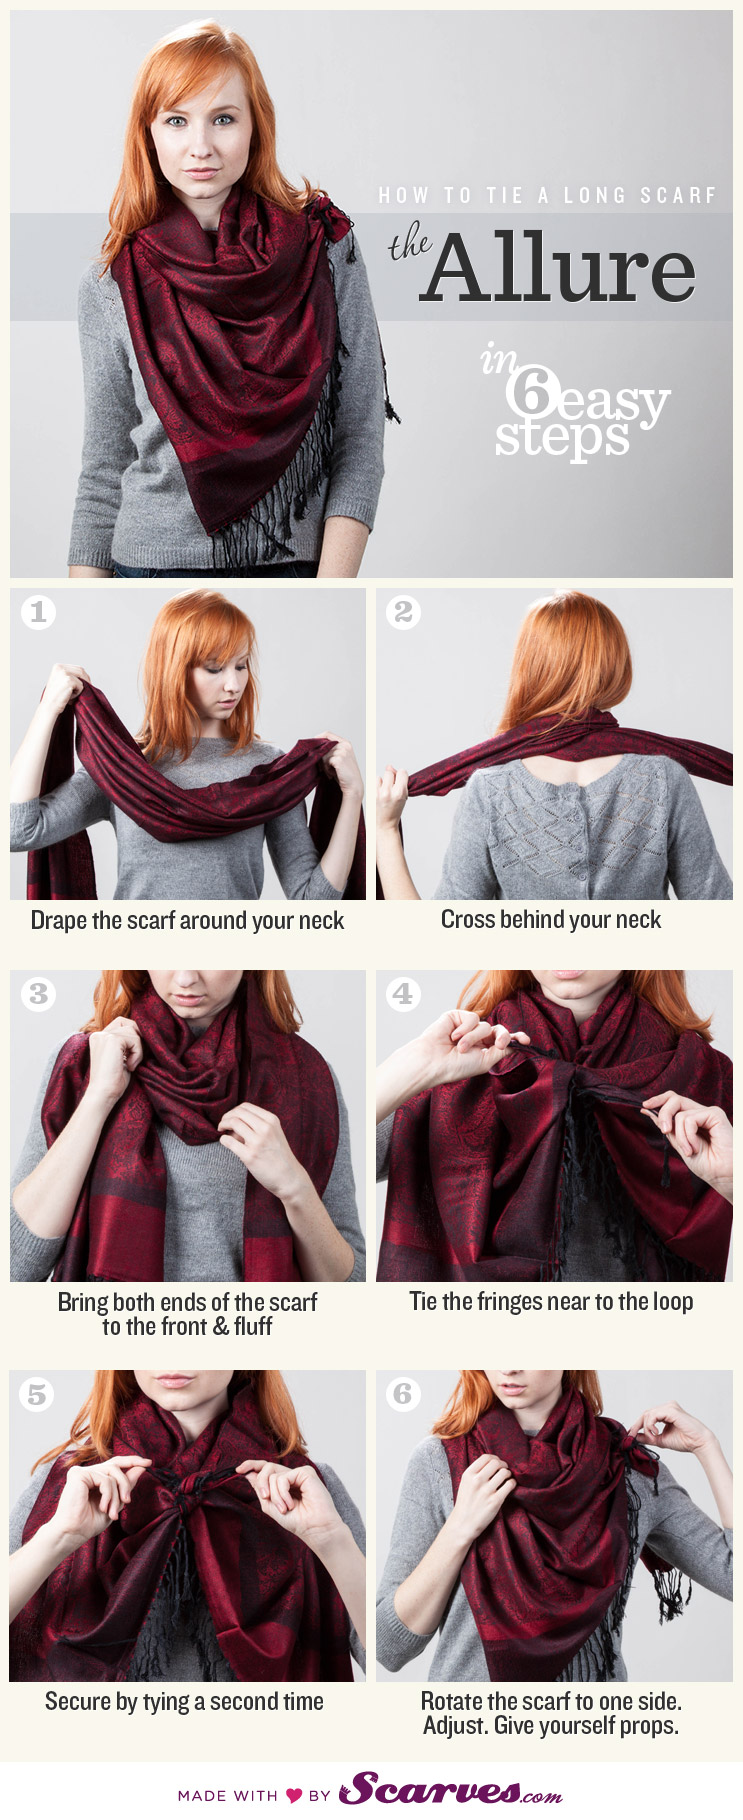 How To Tie A Scarf: The Allure